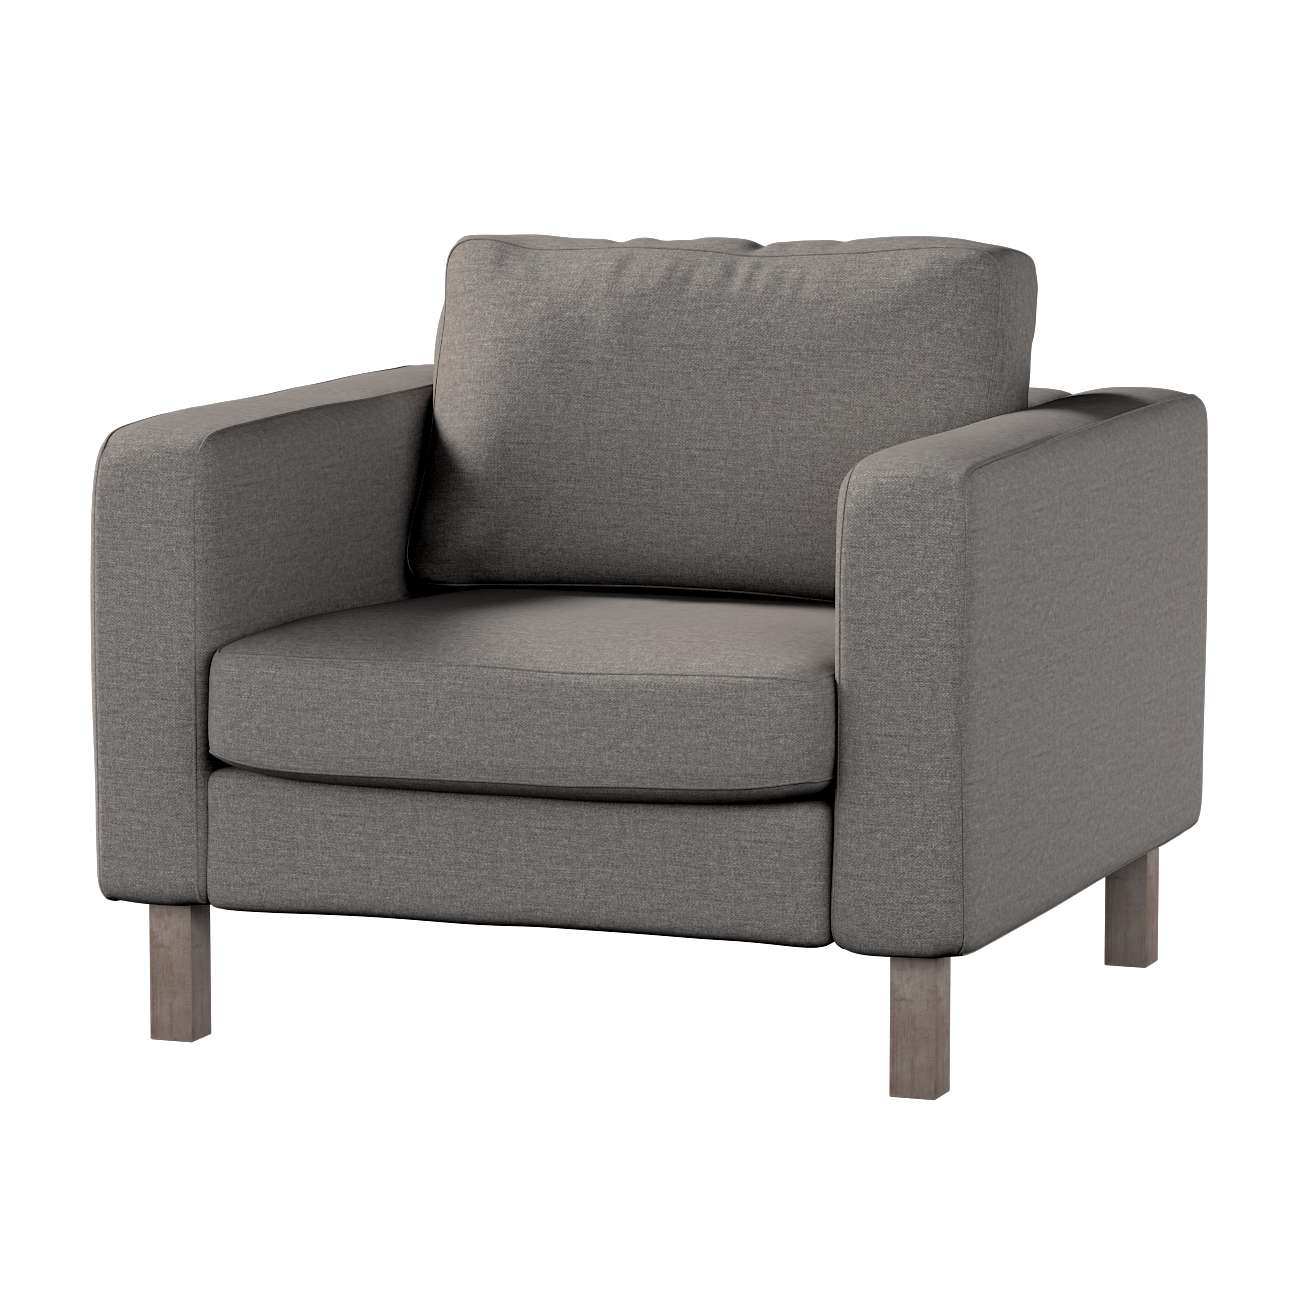 Karlstad armchair cover in collection Edinburgh, fabric: 115-77